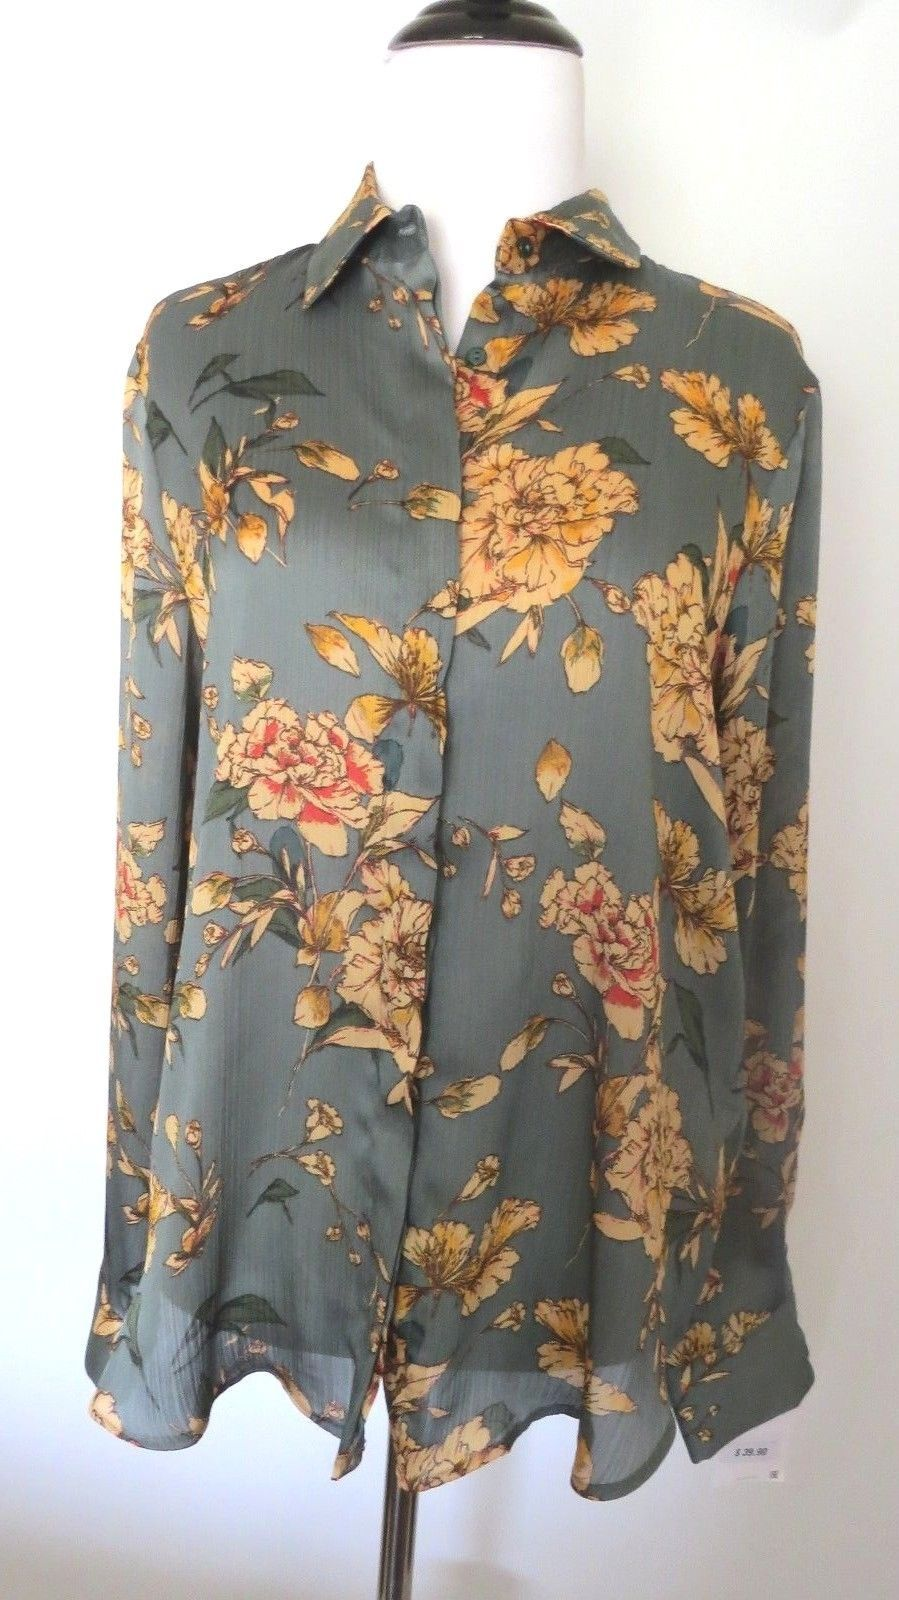 43b006c4 30.00 ❤ Zara Green Color Floral Print Long Sleeve Blouse Size M ❤ #floral